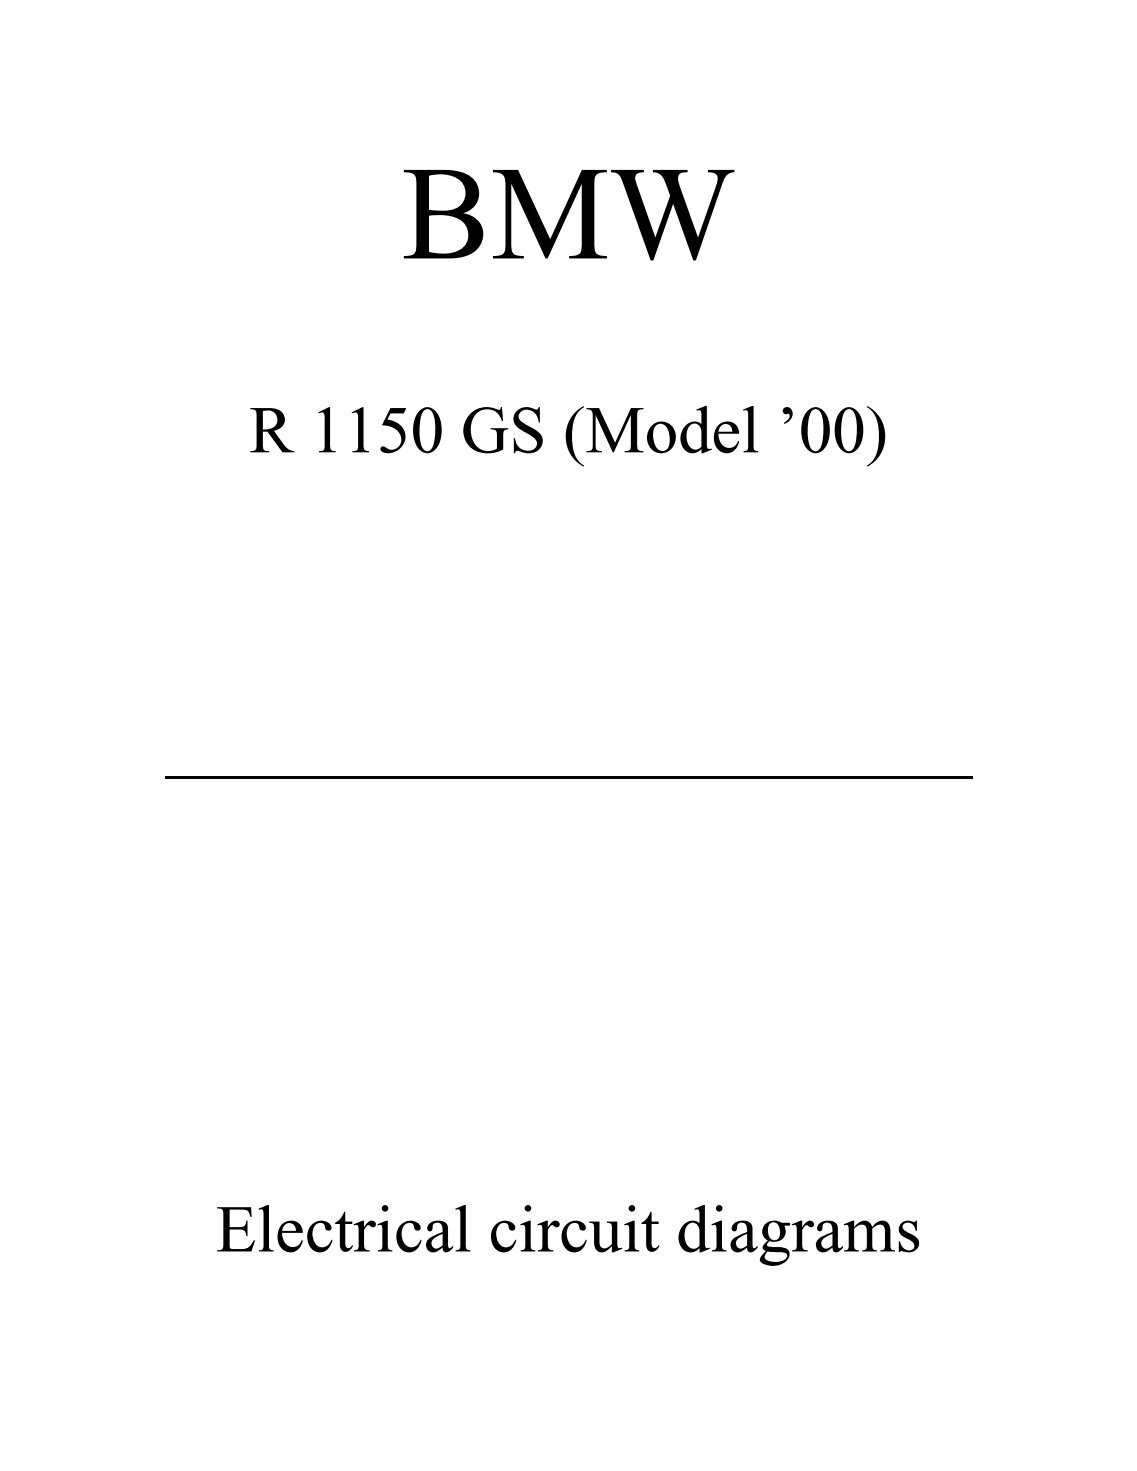 Swell R 1100 Gs Electrical Circuit Diagrams Wiring Diagram Data Wiring Digital Resources Llinedefiancerspsorg